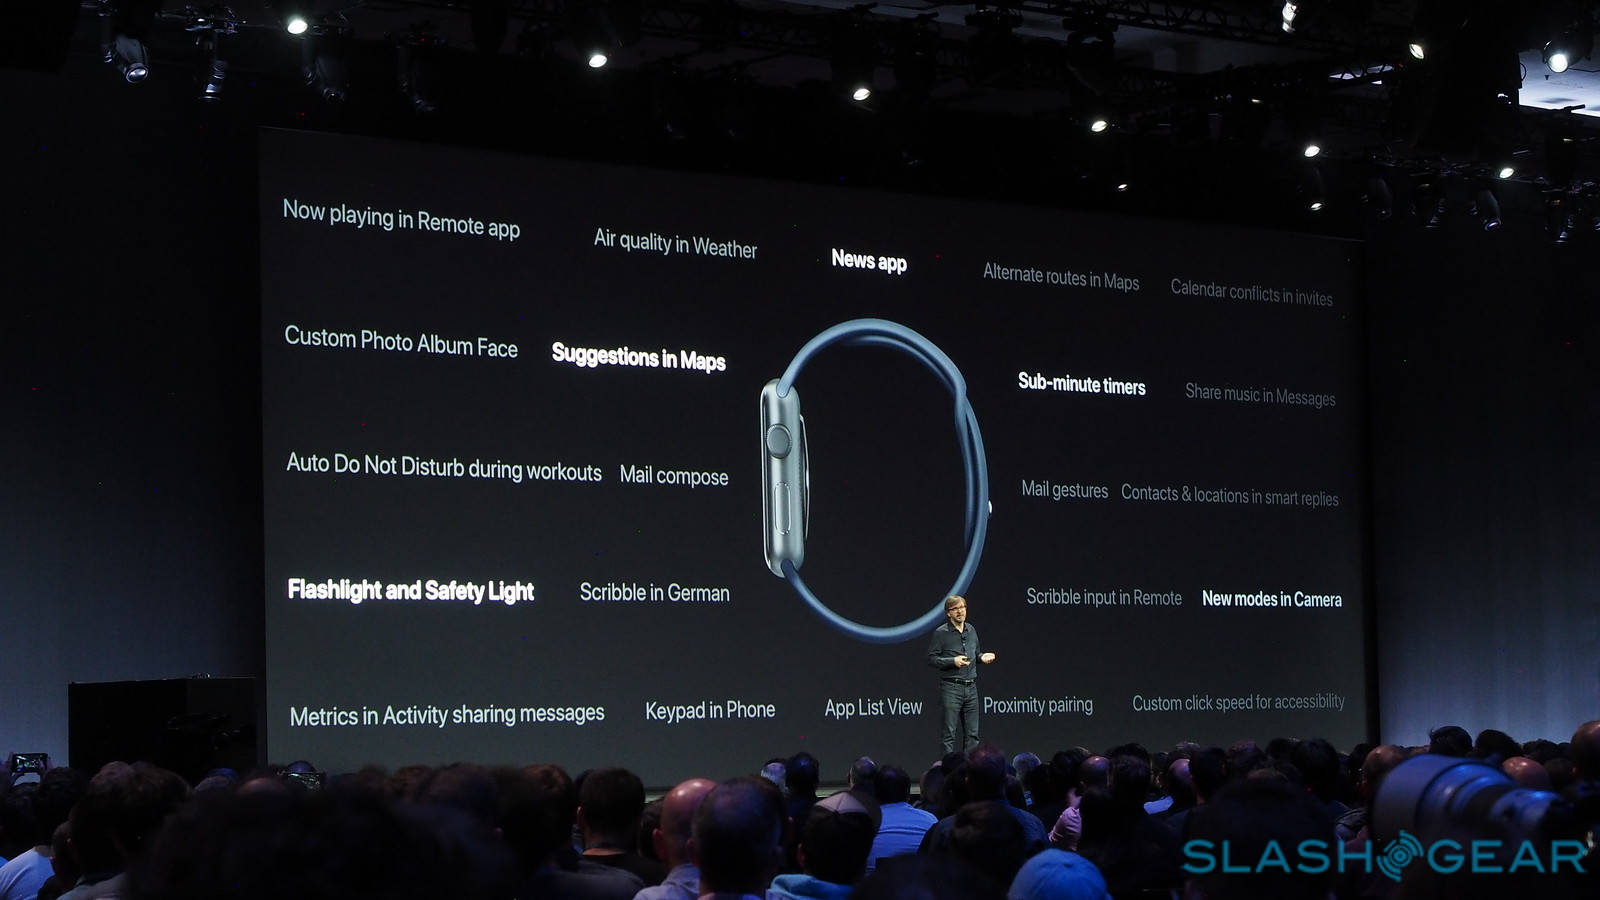 Apps on WatchOS 4 Should Run Much Faster